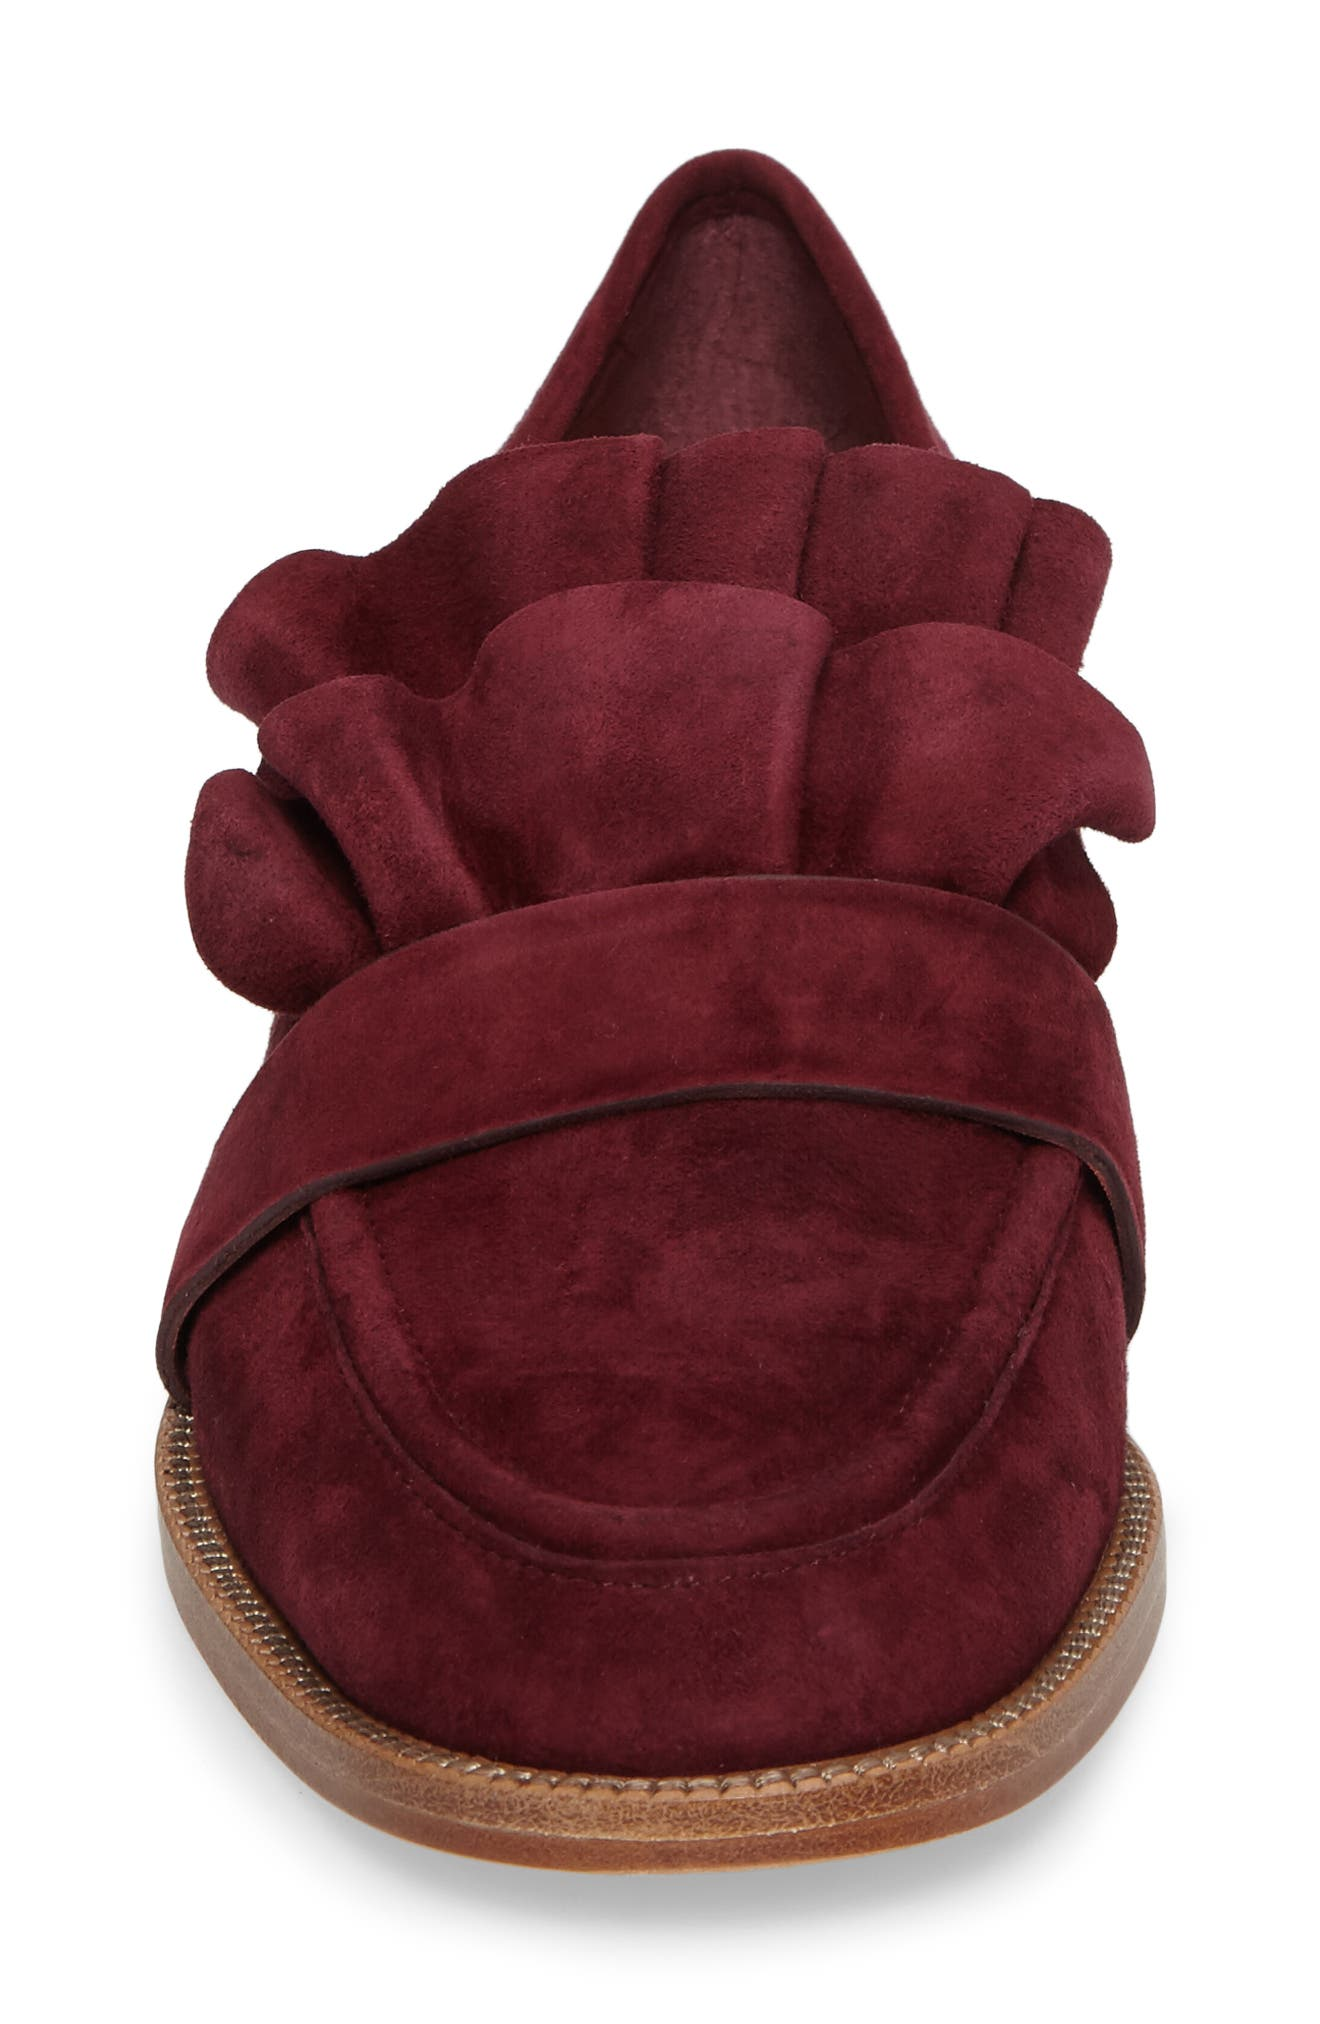 Tenley Ruffled Loafer,                             Alternate thumbnail 4, color,                             Merlot Suede